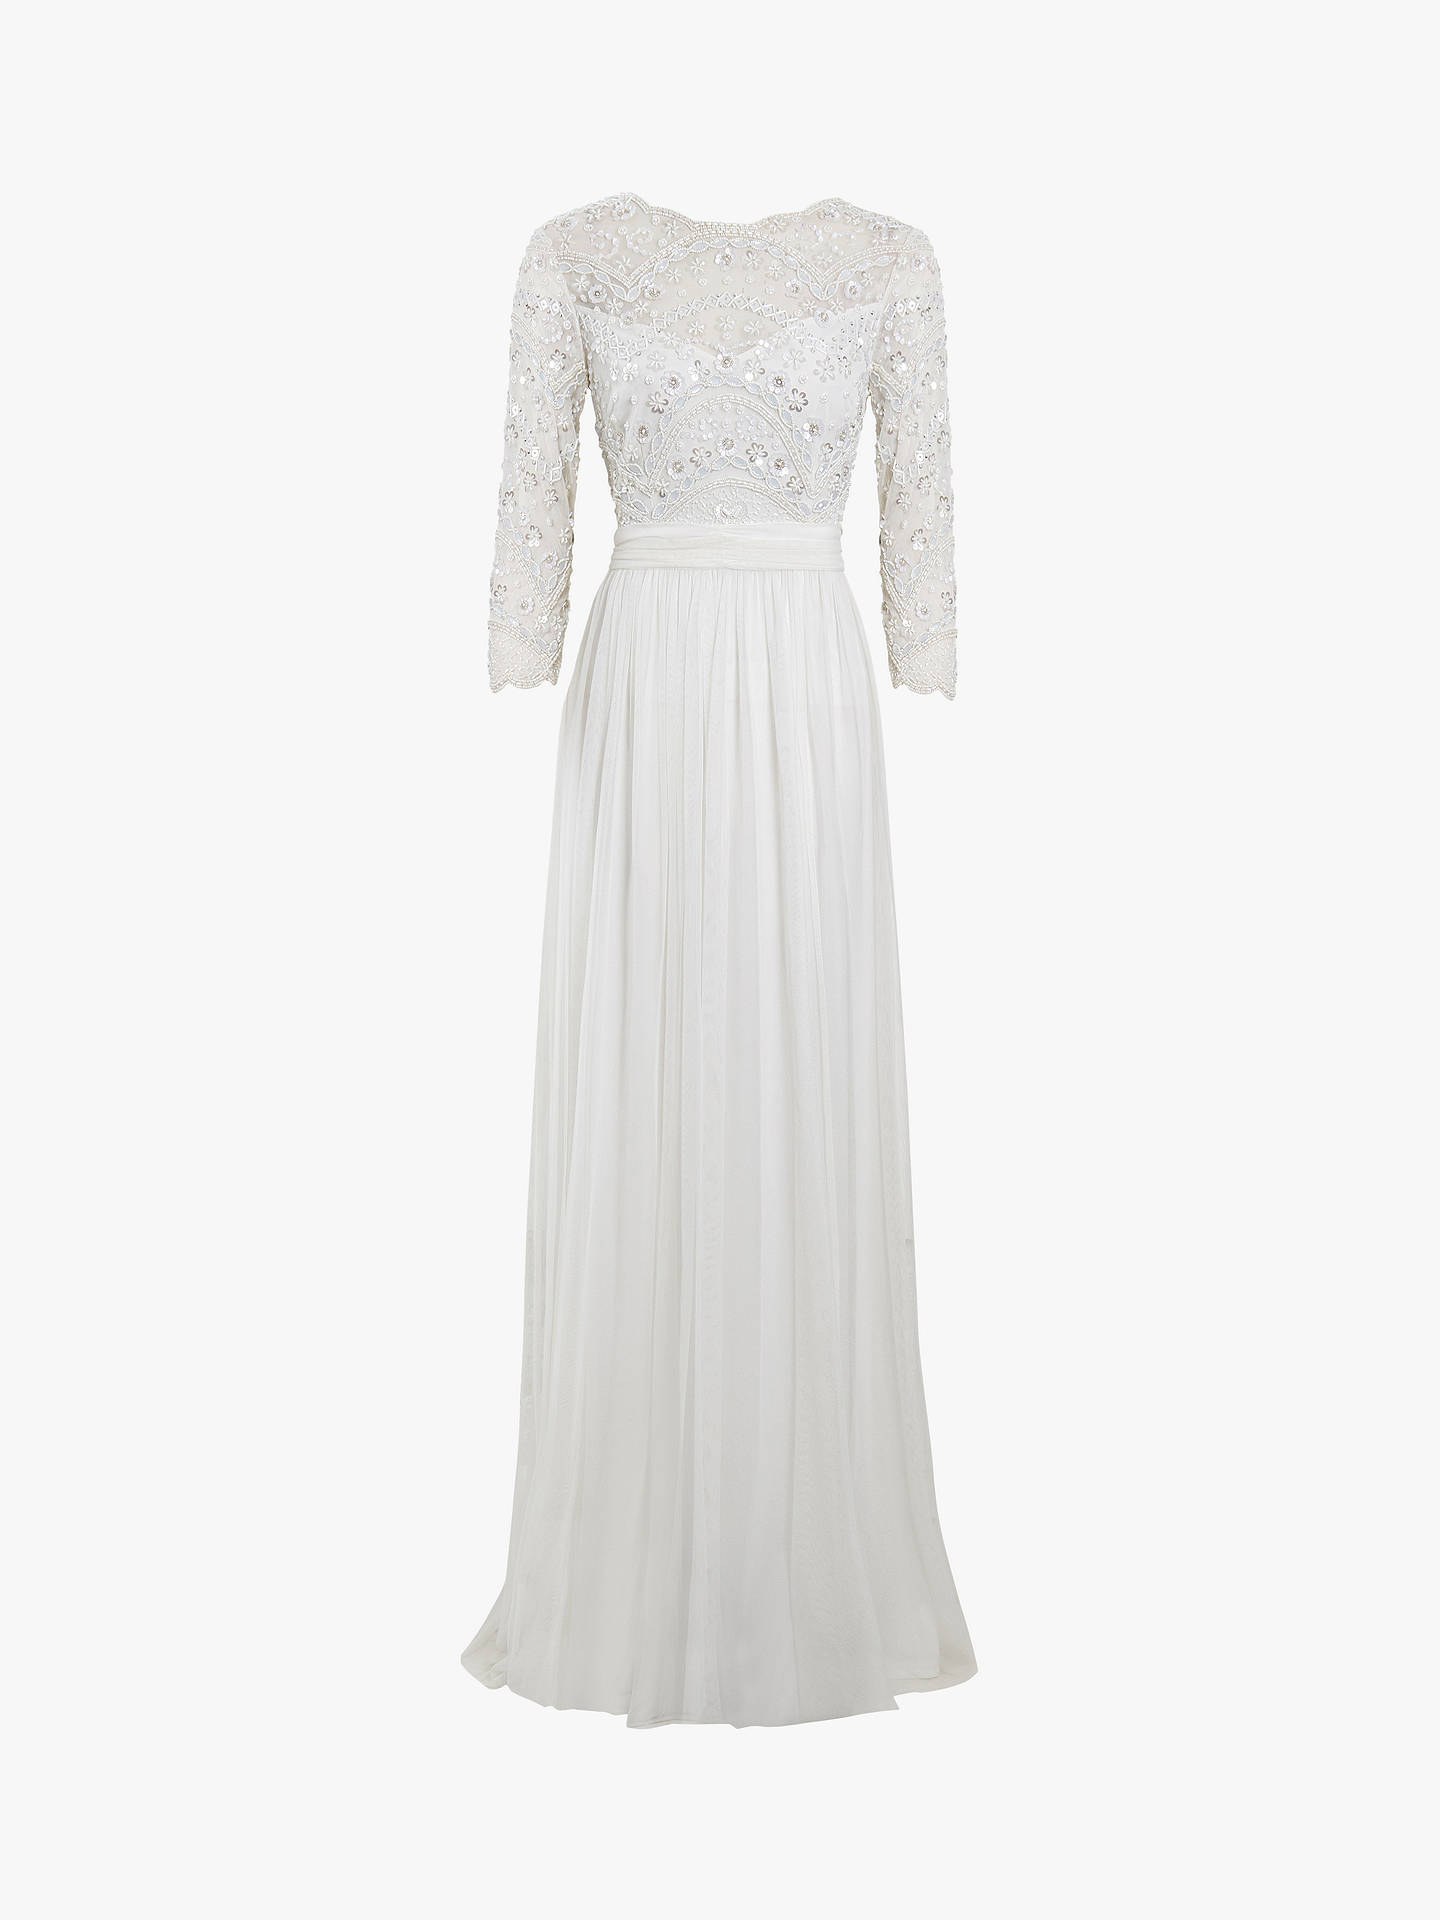 Buy Raishma Bridal Gown, White, 8 Online at johnlewis.com